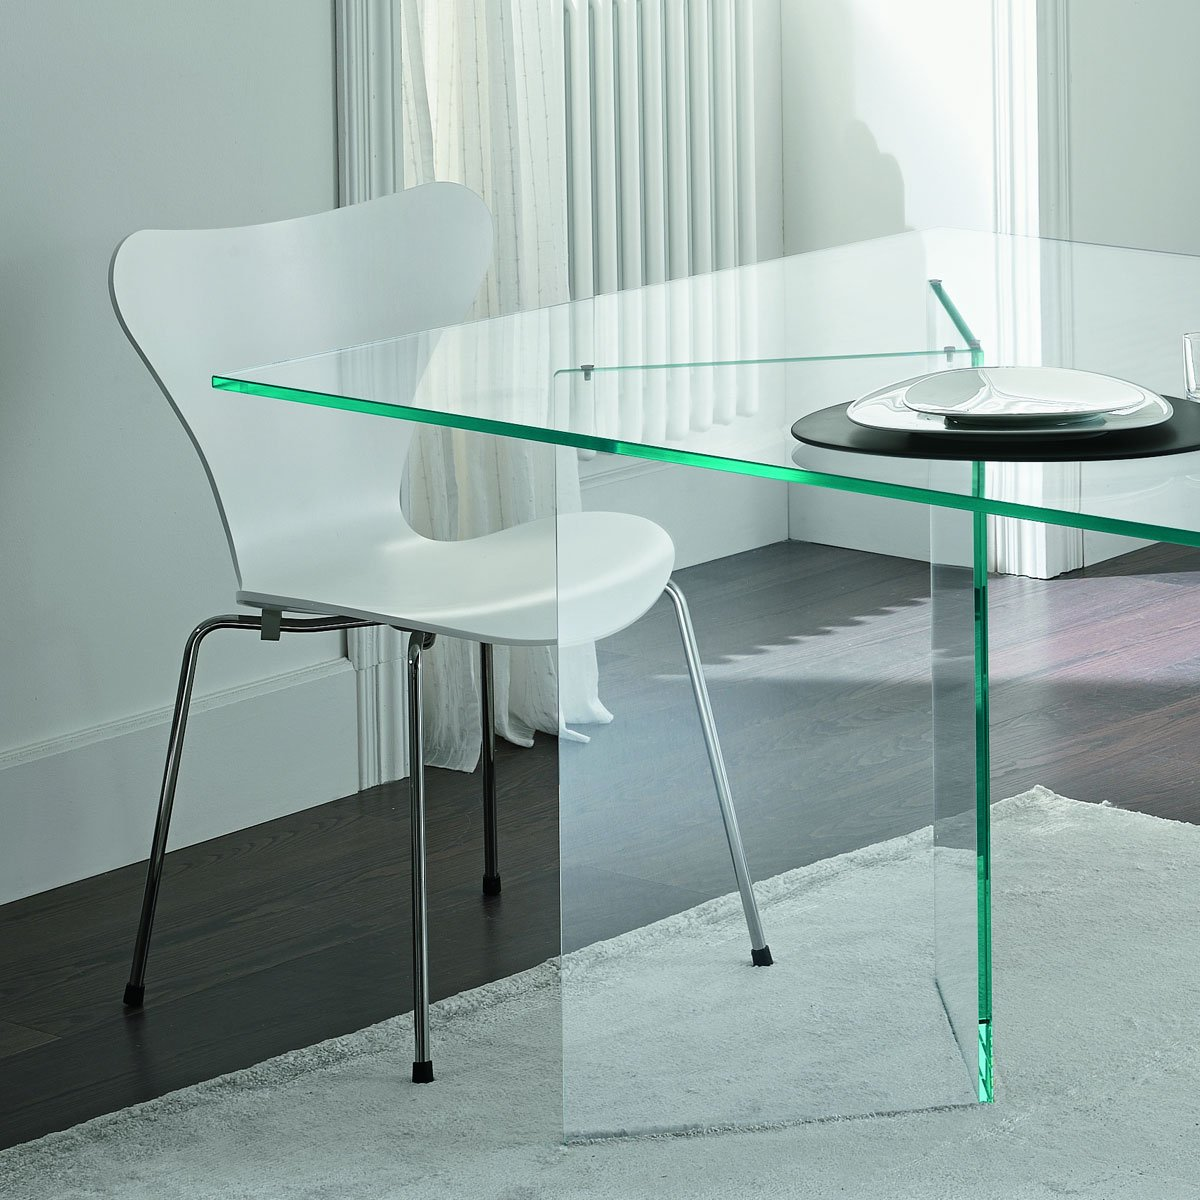 Tonelli Bacco Glass Dining Table Klarity Glass Furniture : Glass dining table bacco 04 from glassfurniture.co.uk size 1200 x 1200 jpeg 207kB